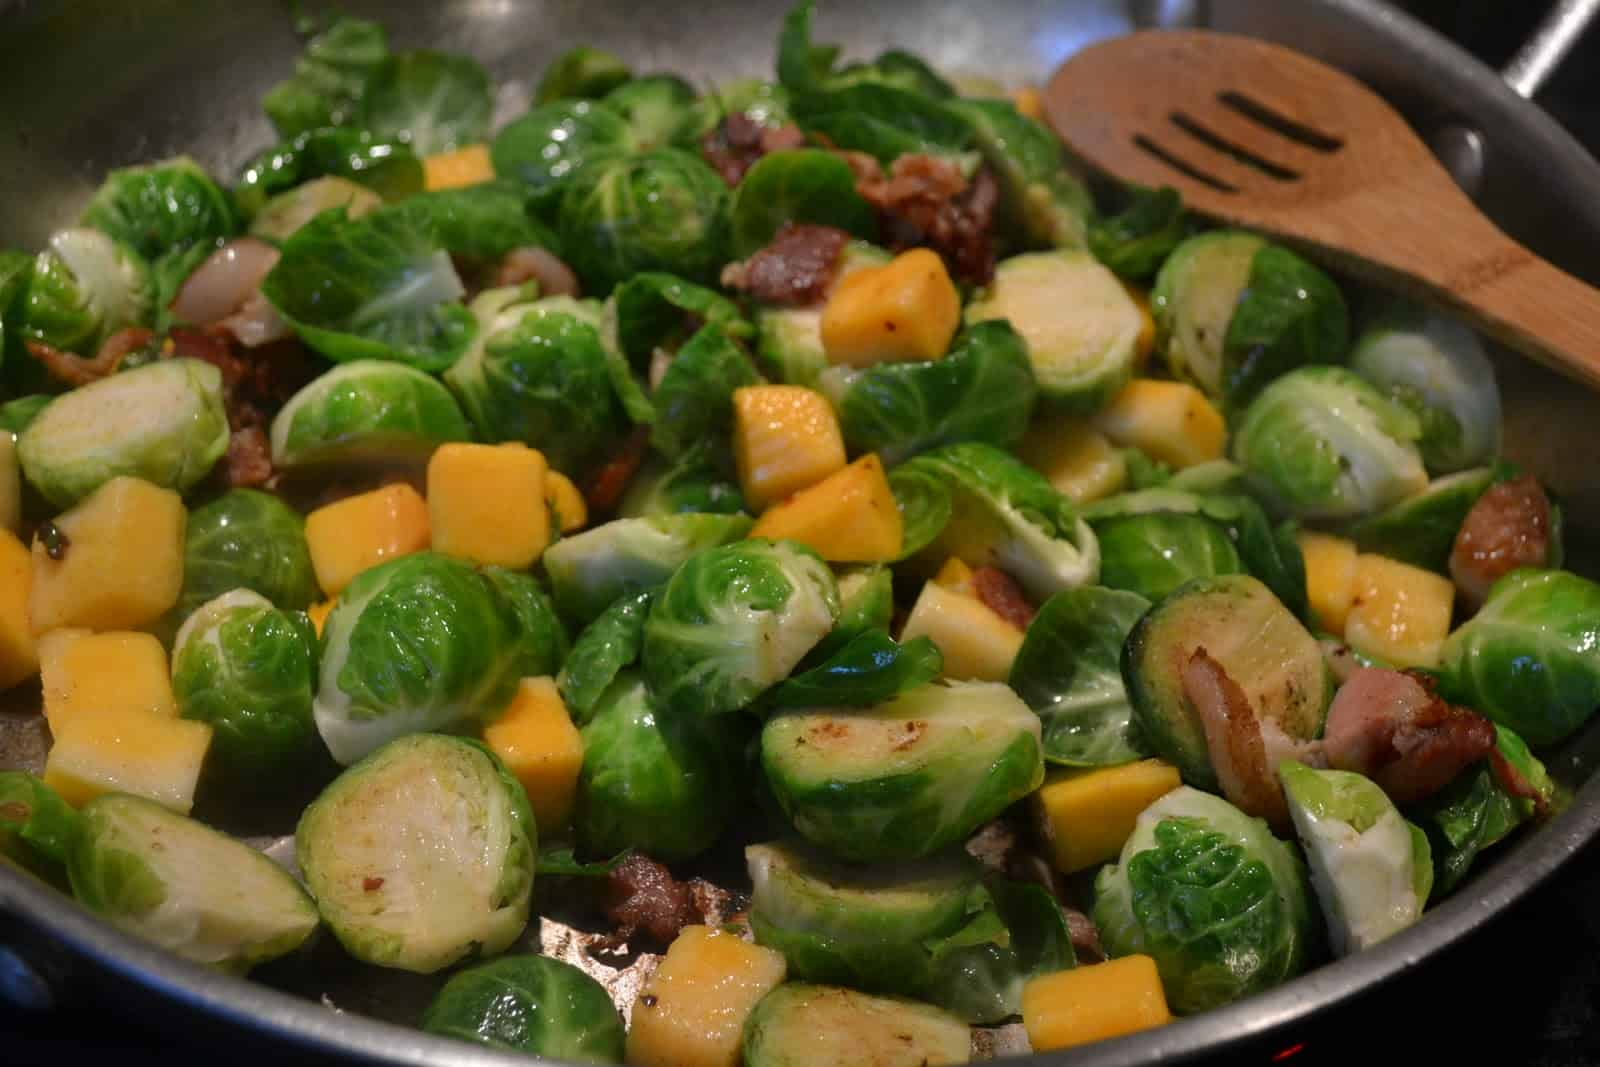 Brussel Sprouts, bacon and butternut squash being sauteed in a pan.